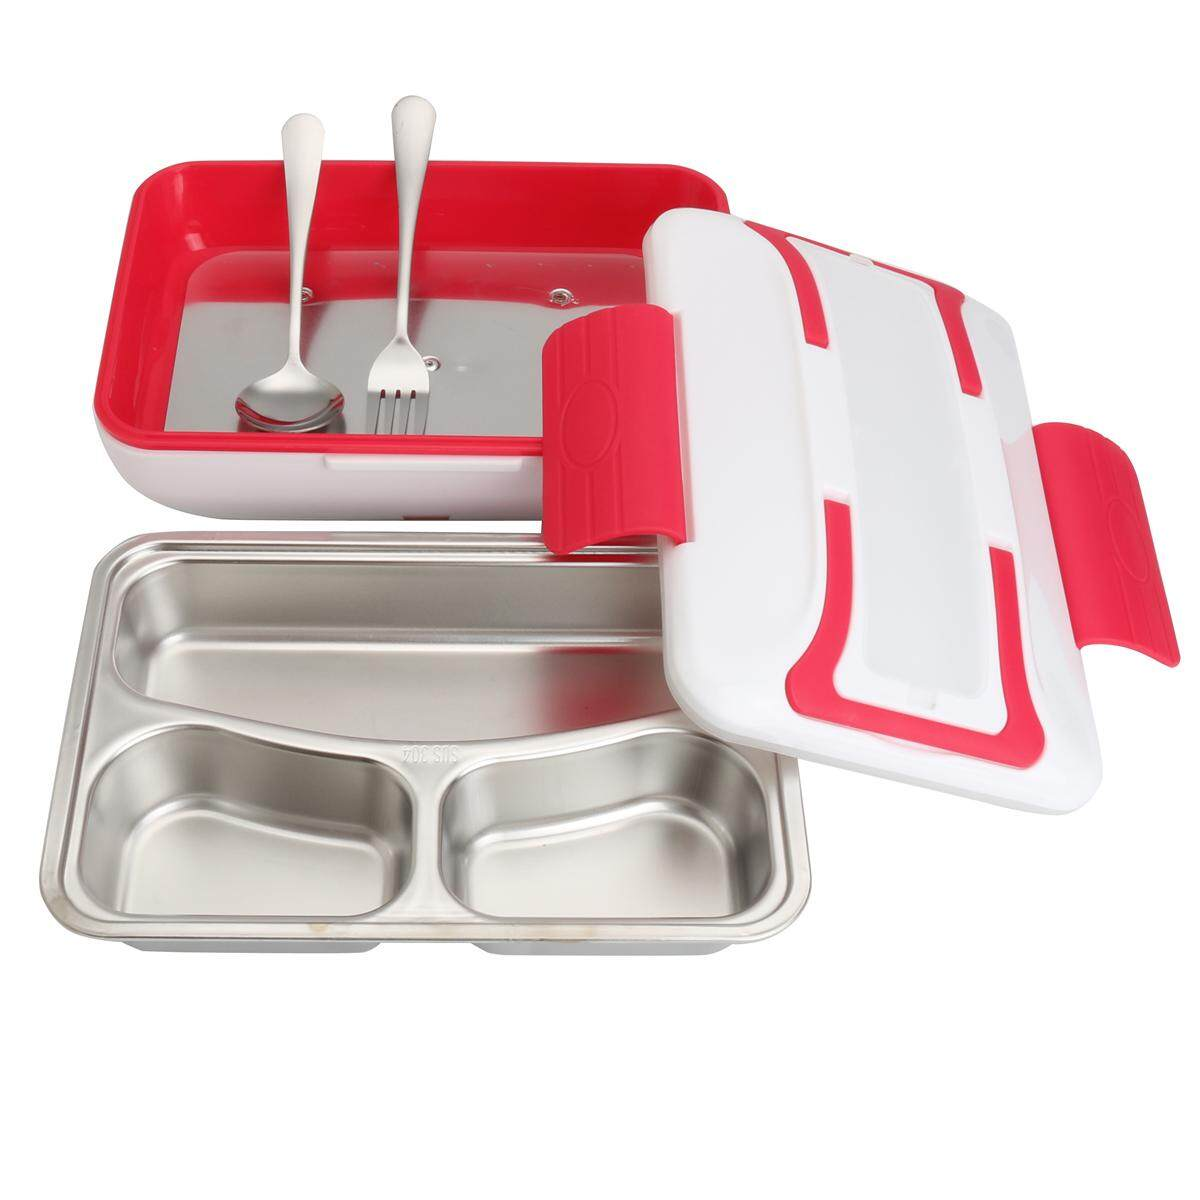 Portable Car Truck Electric Heating Lunch Box Food Warm Heater Storage Container By Moonbeam.